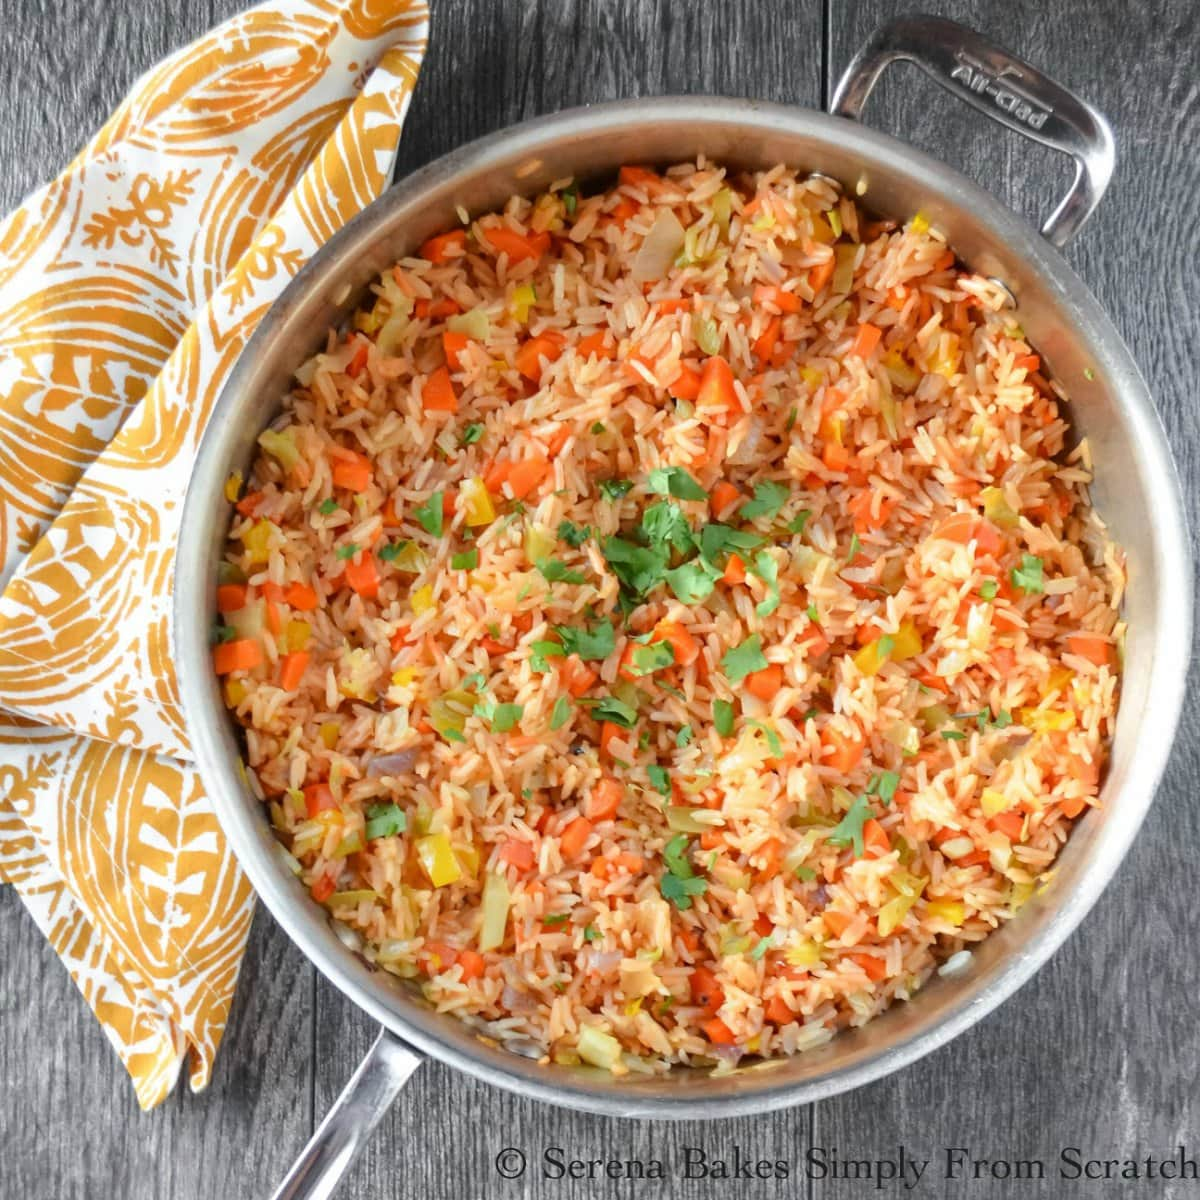 Mexican Rice recipe that tastes just like what you find at your favorite Mexican Restaurant. Easy to make, great flavors, and the whole family will love it! A favorite recipe for Mexican Rice from Serena Bakes Simply From Scratch.